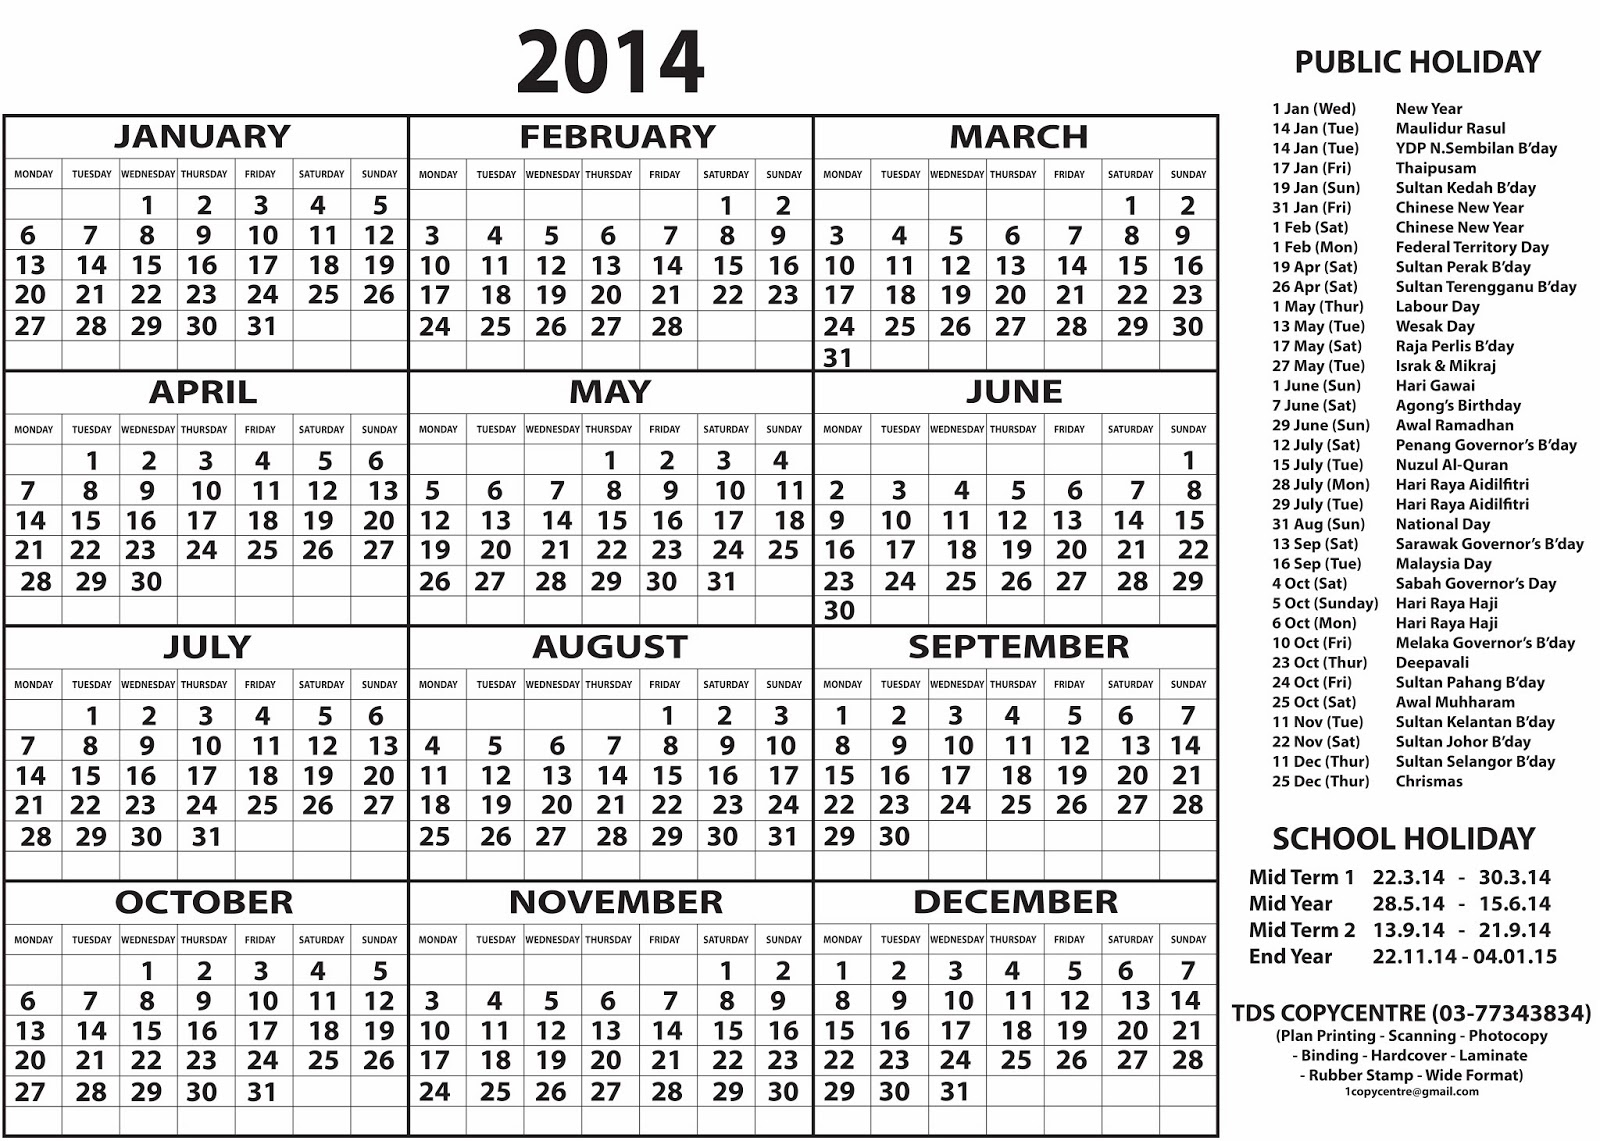 yearly planning calendar template 2014 - kalendar 2014 printable 2014 calendar printable 2014